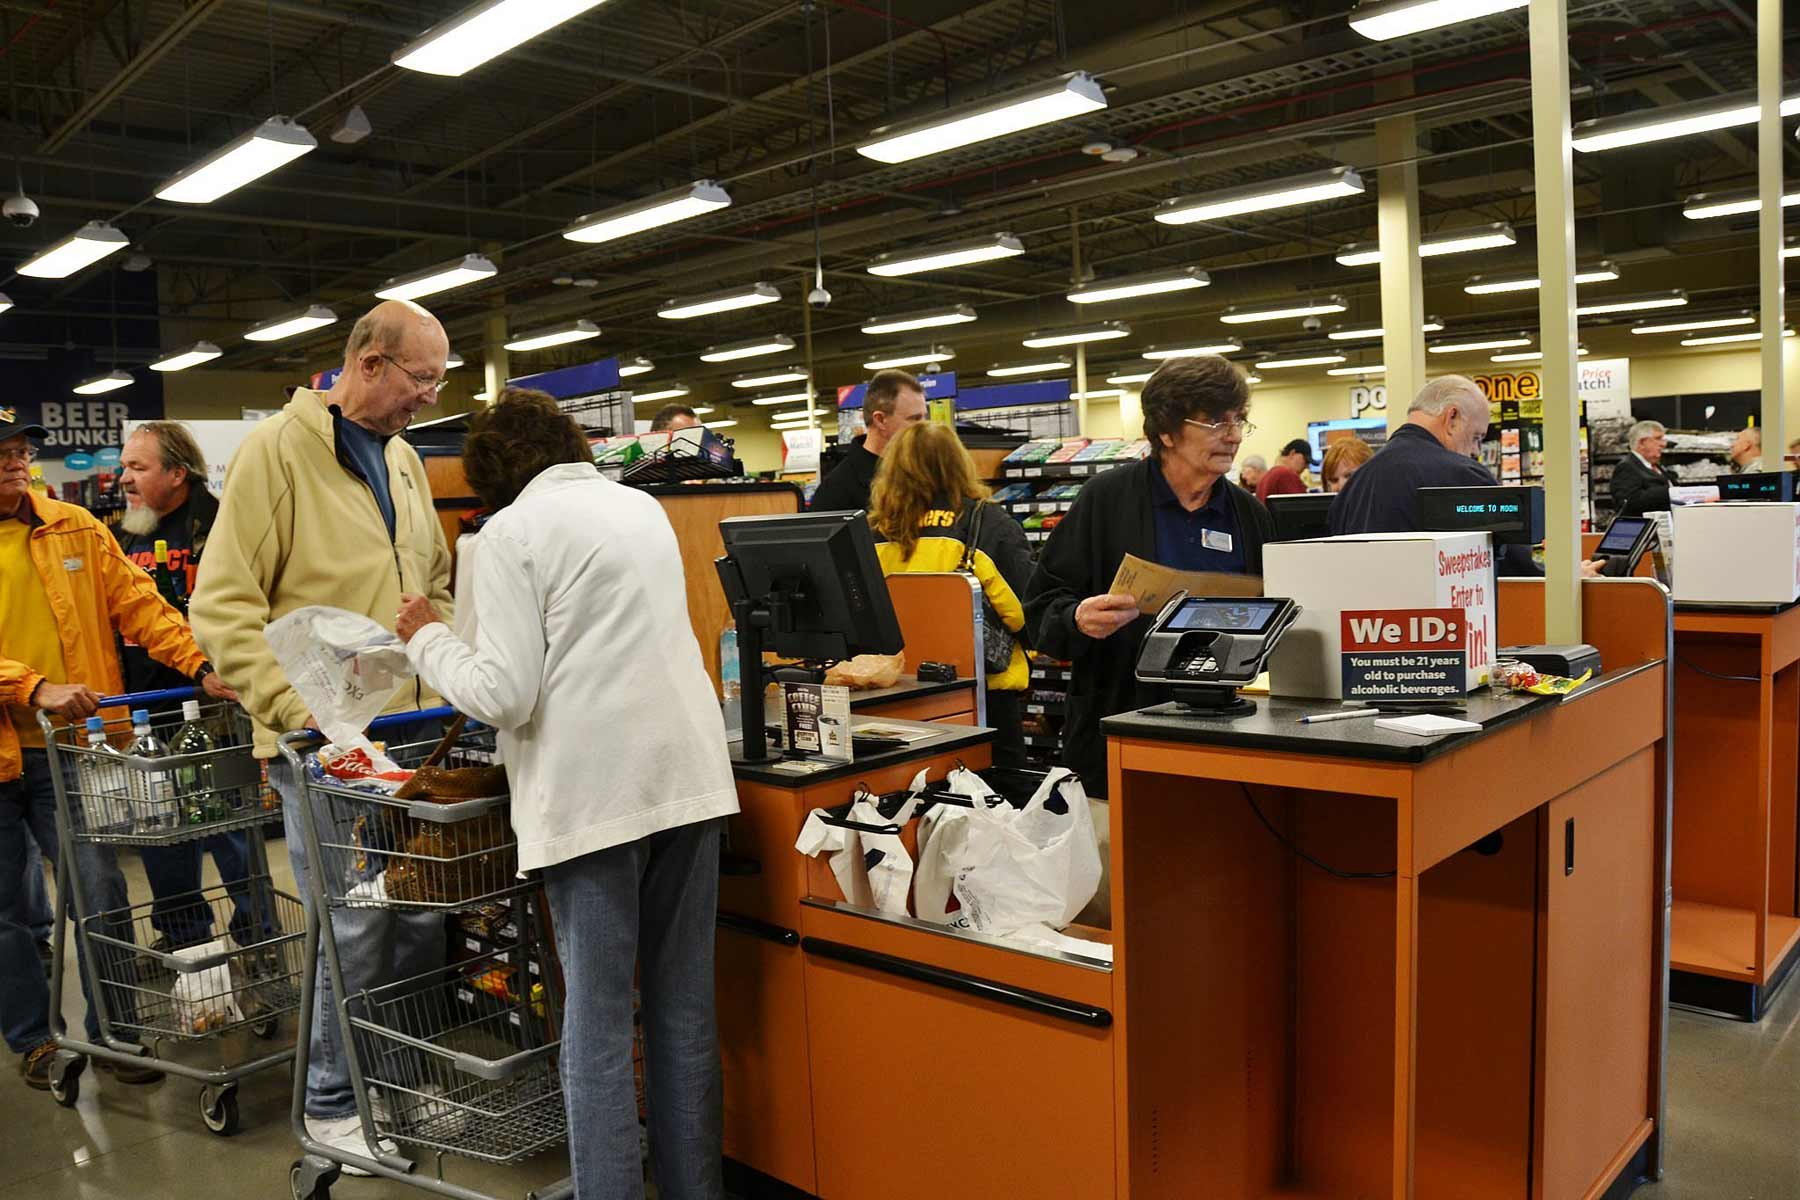 Millions More Vets and Caregivers Are About to Get Commissary, Exchange Access